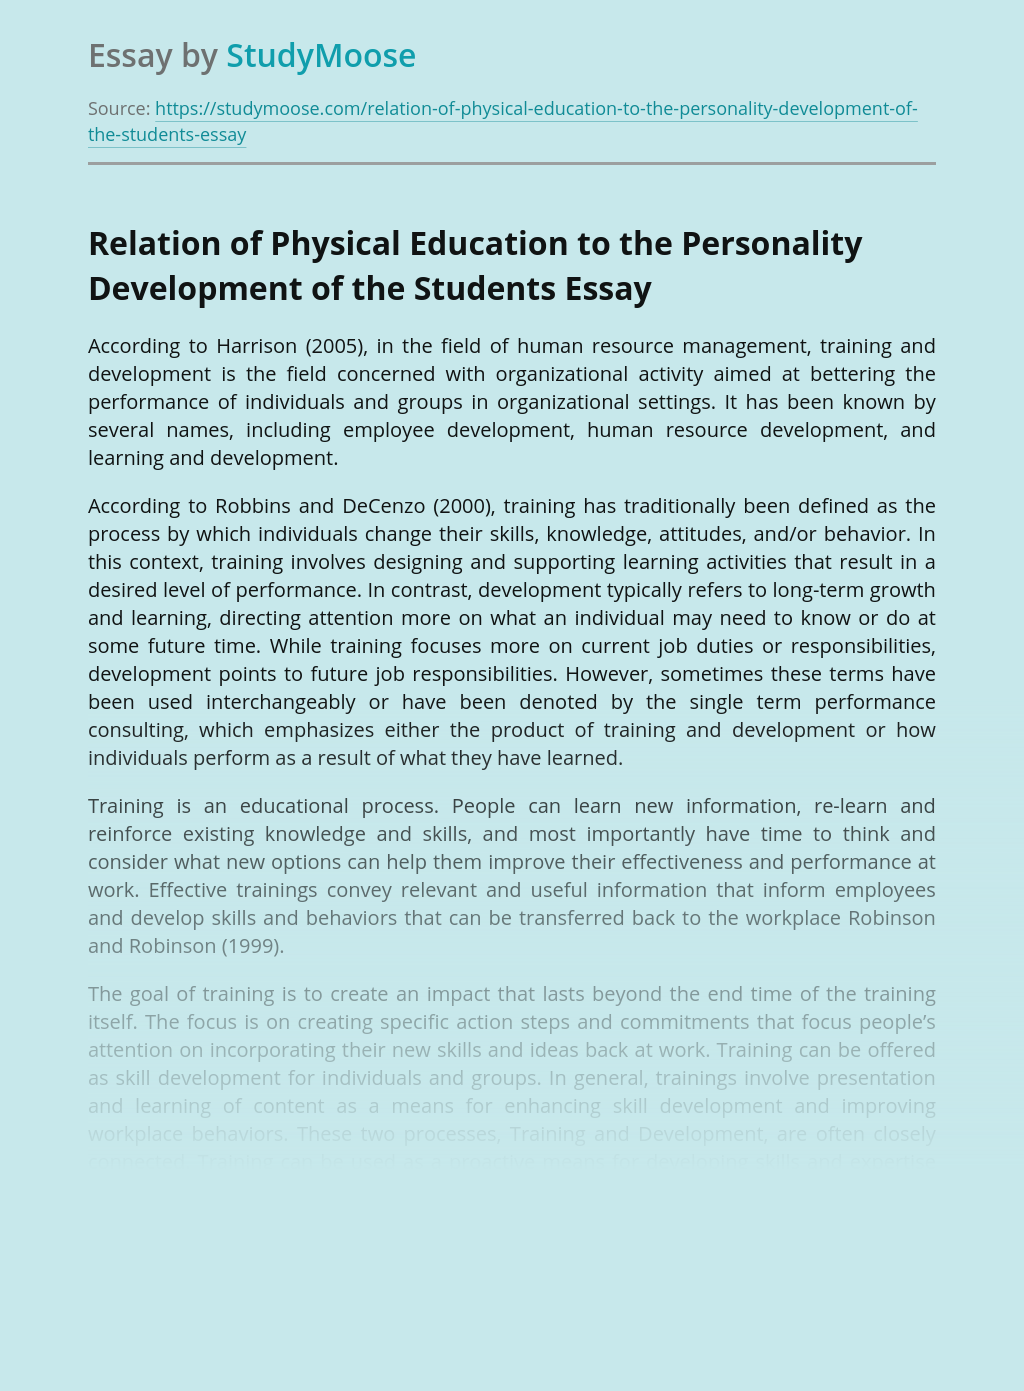 Relation of Physical Education to the Personality Development of the Students